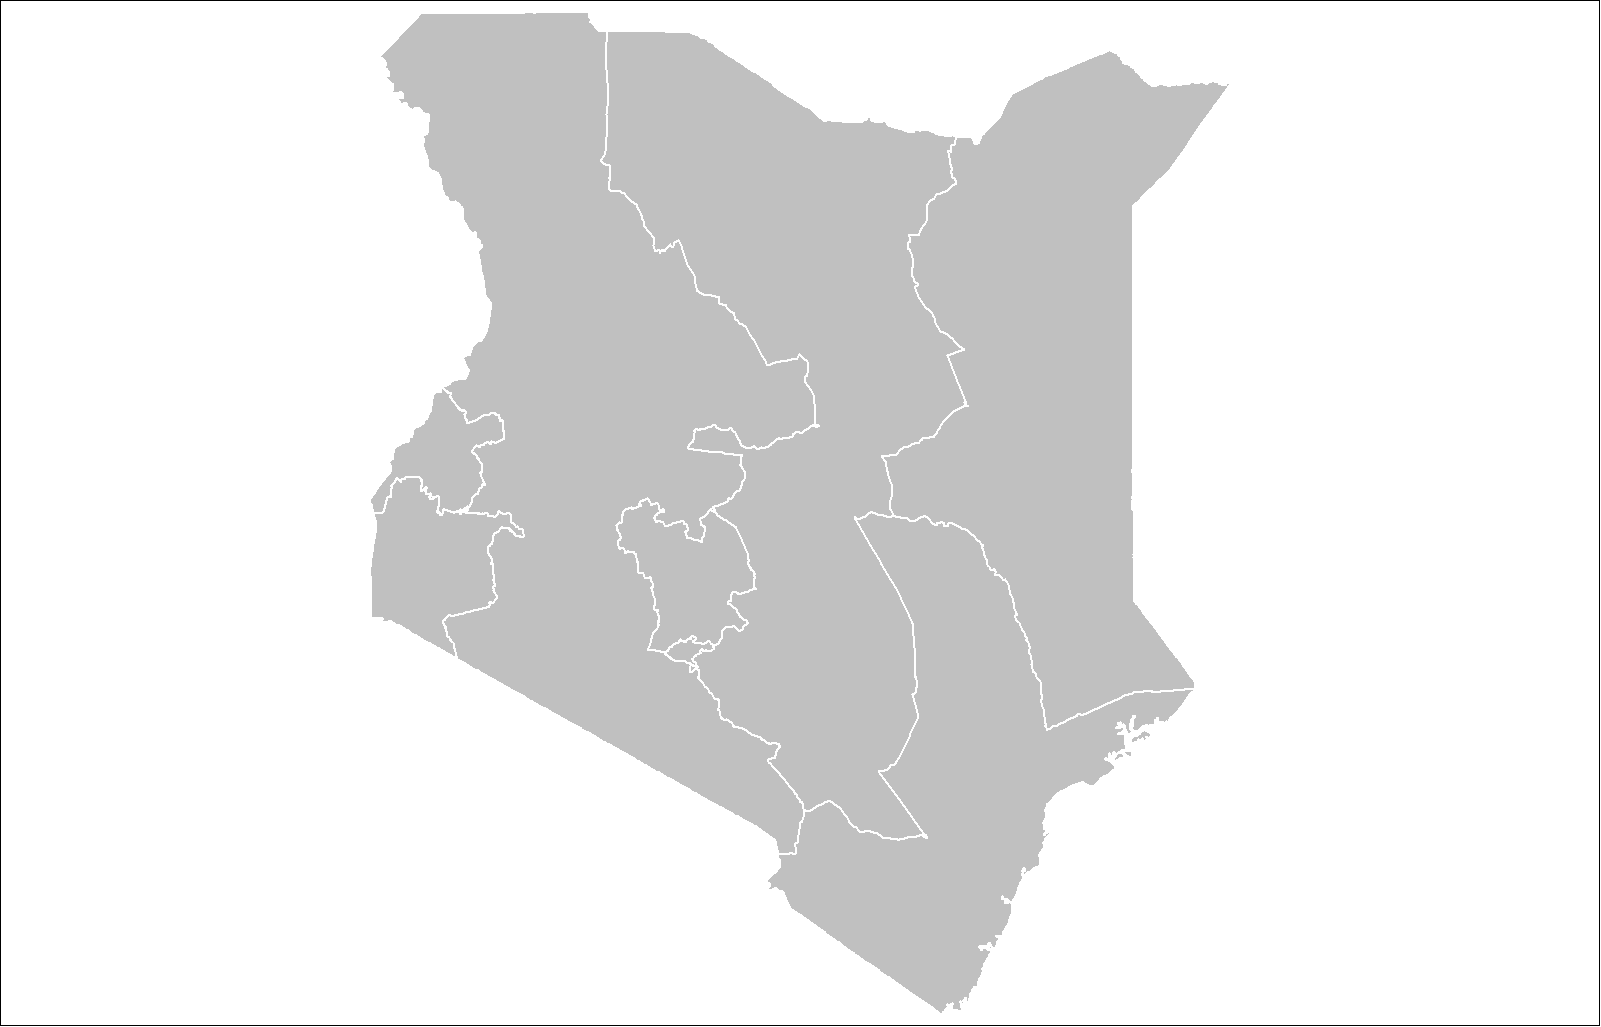 Kenya Provinces large map